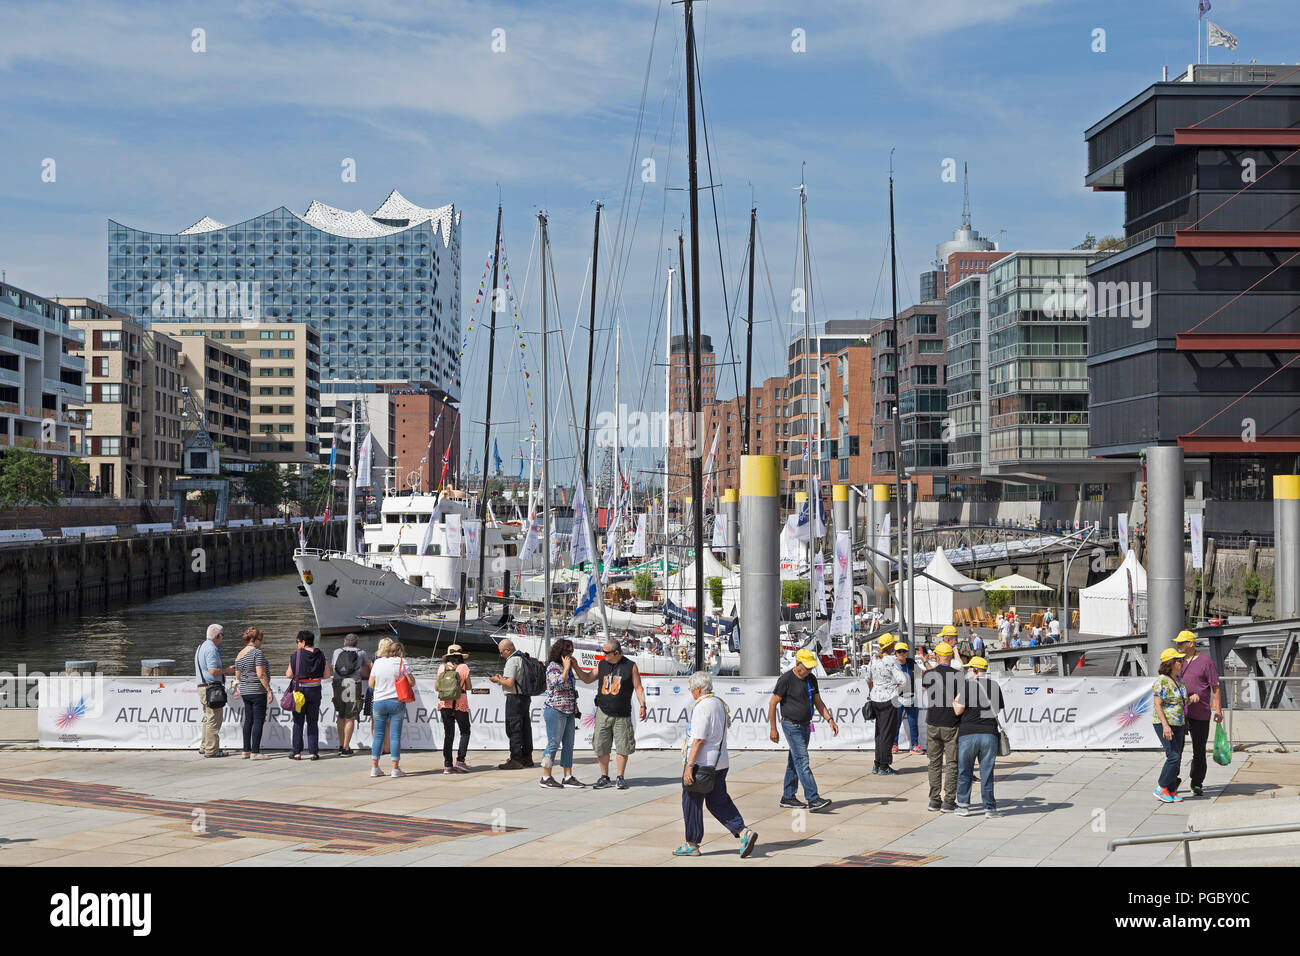 Elbe Philharmonic Hall with Kaiserkai, Sandtorkai and Magellan Terraces, HafenCity (Harbour City), Hamburg, Germany - Stock Image